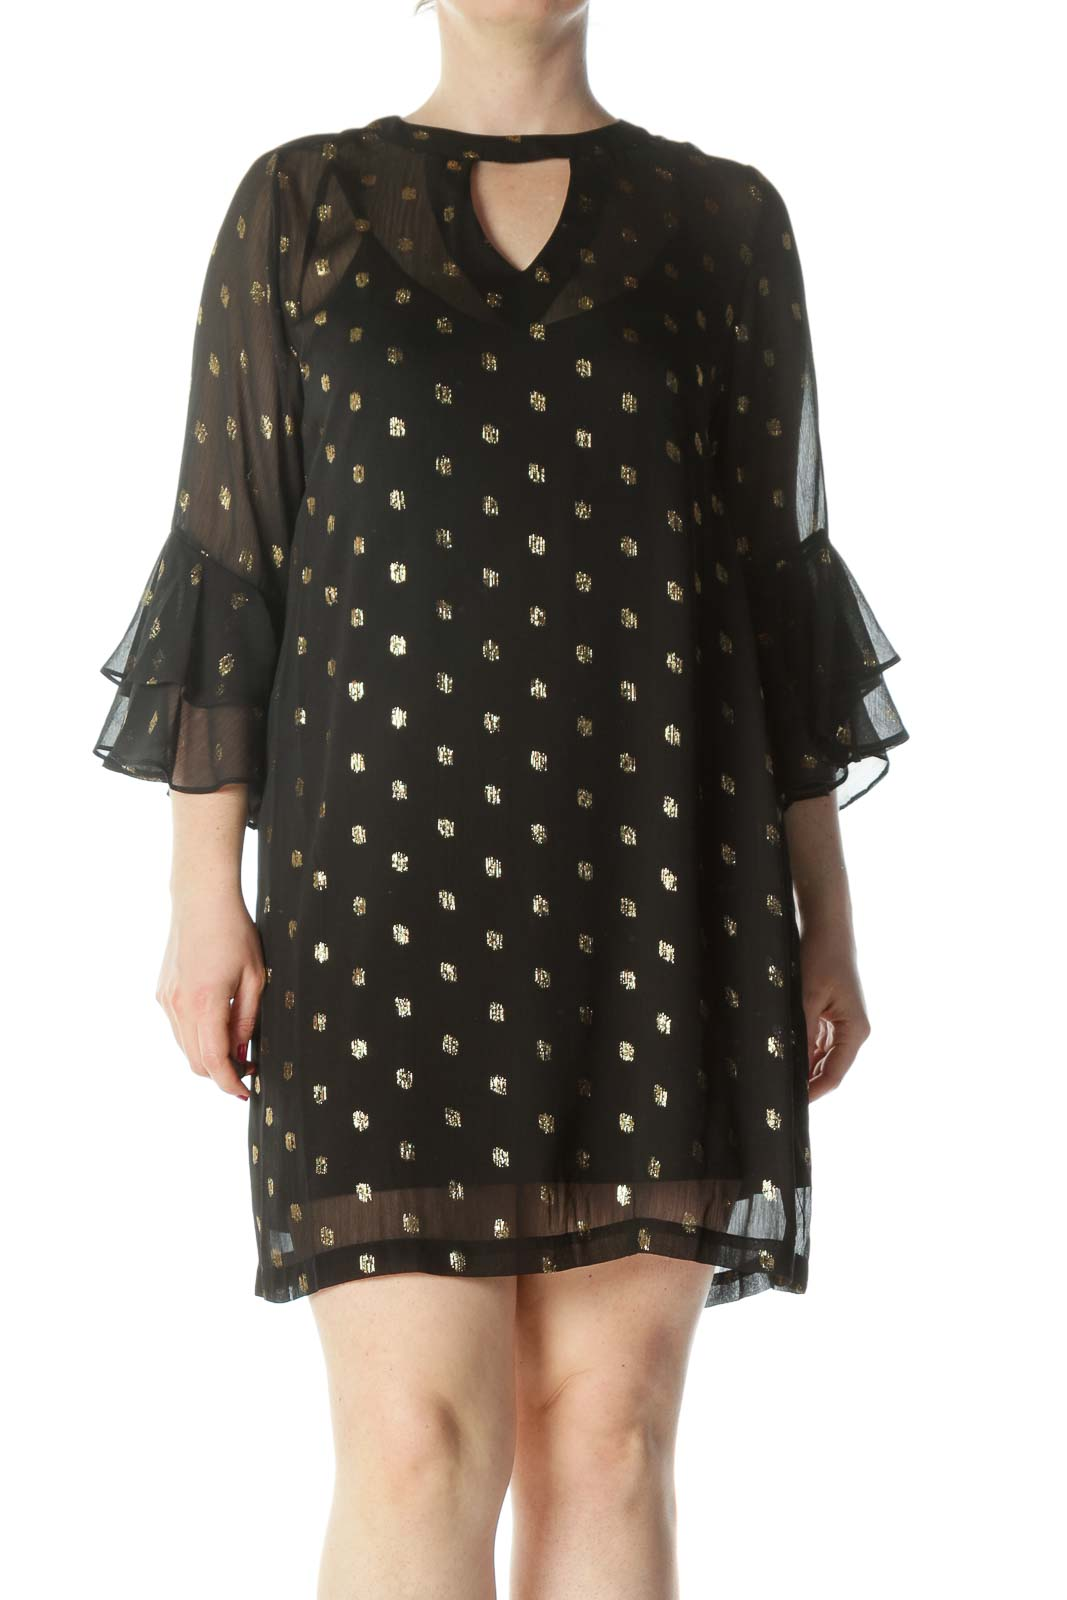 Black/Gold Metallic-Thread-Spots Keyhole See-Through Cocktail Dress